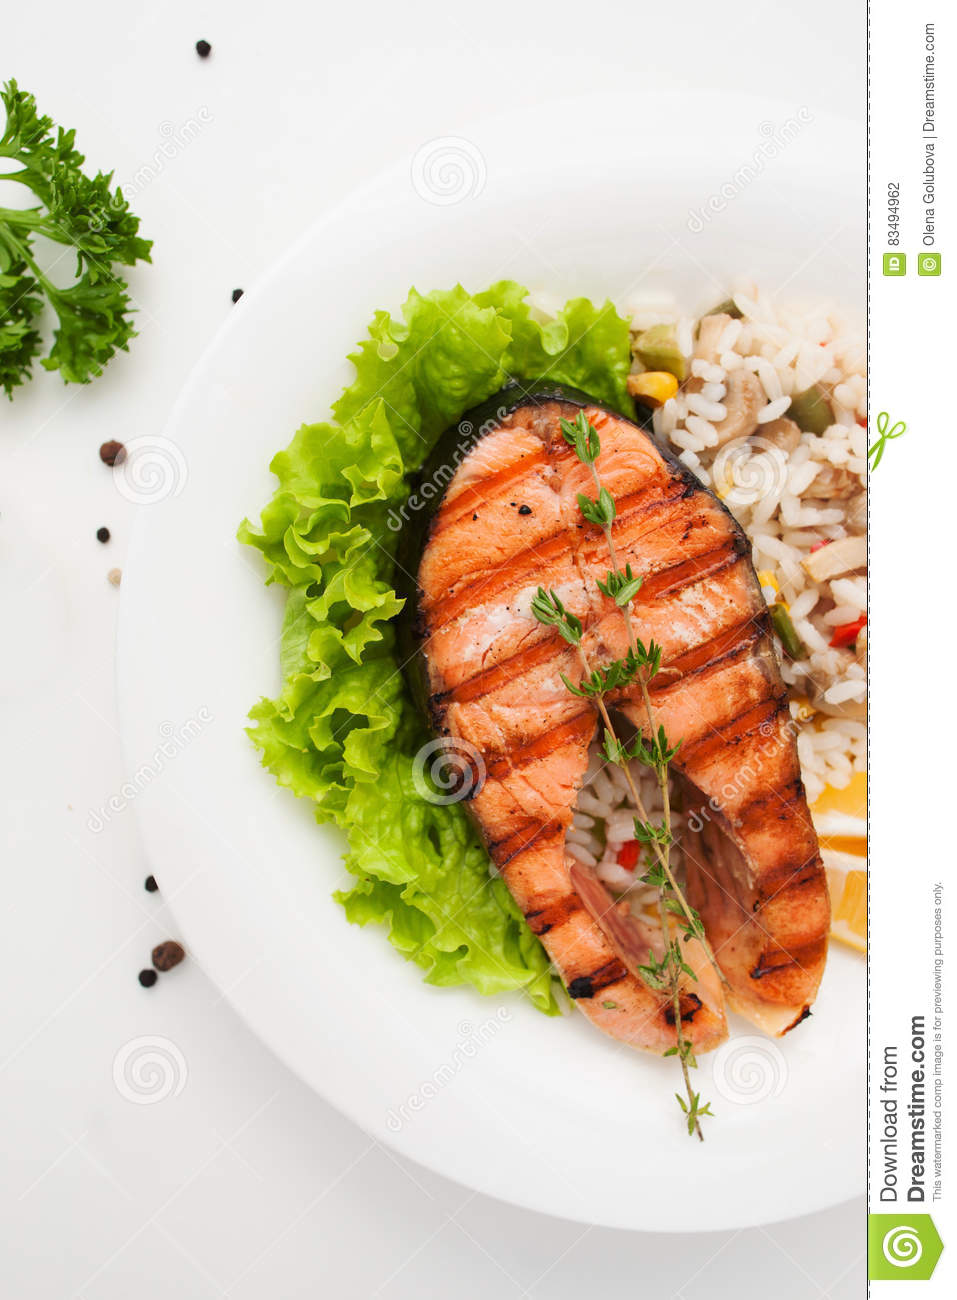 Grilled Salmon On Vegetable Risotto Free Space Stock Photo Image